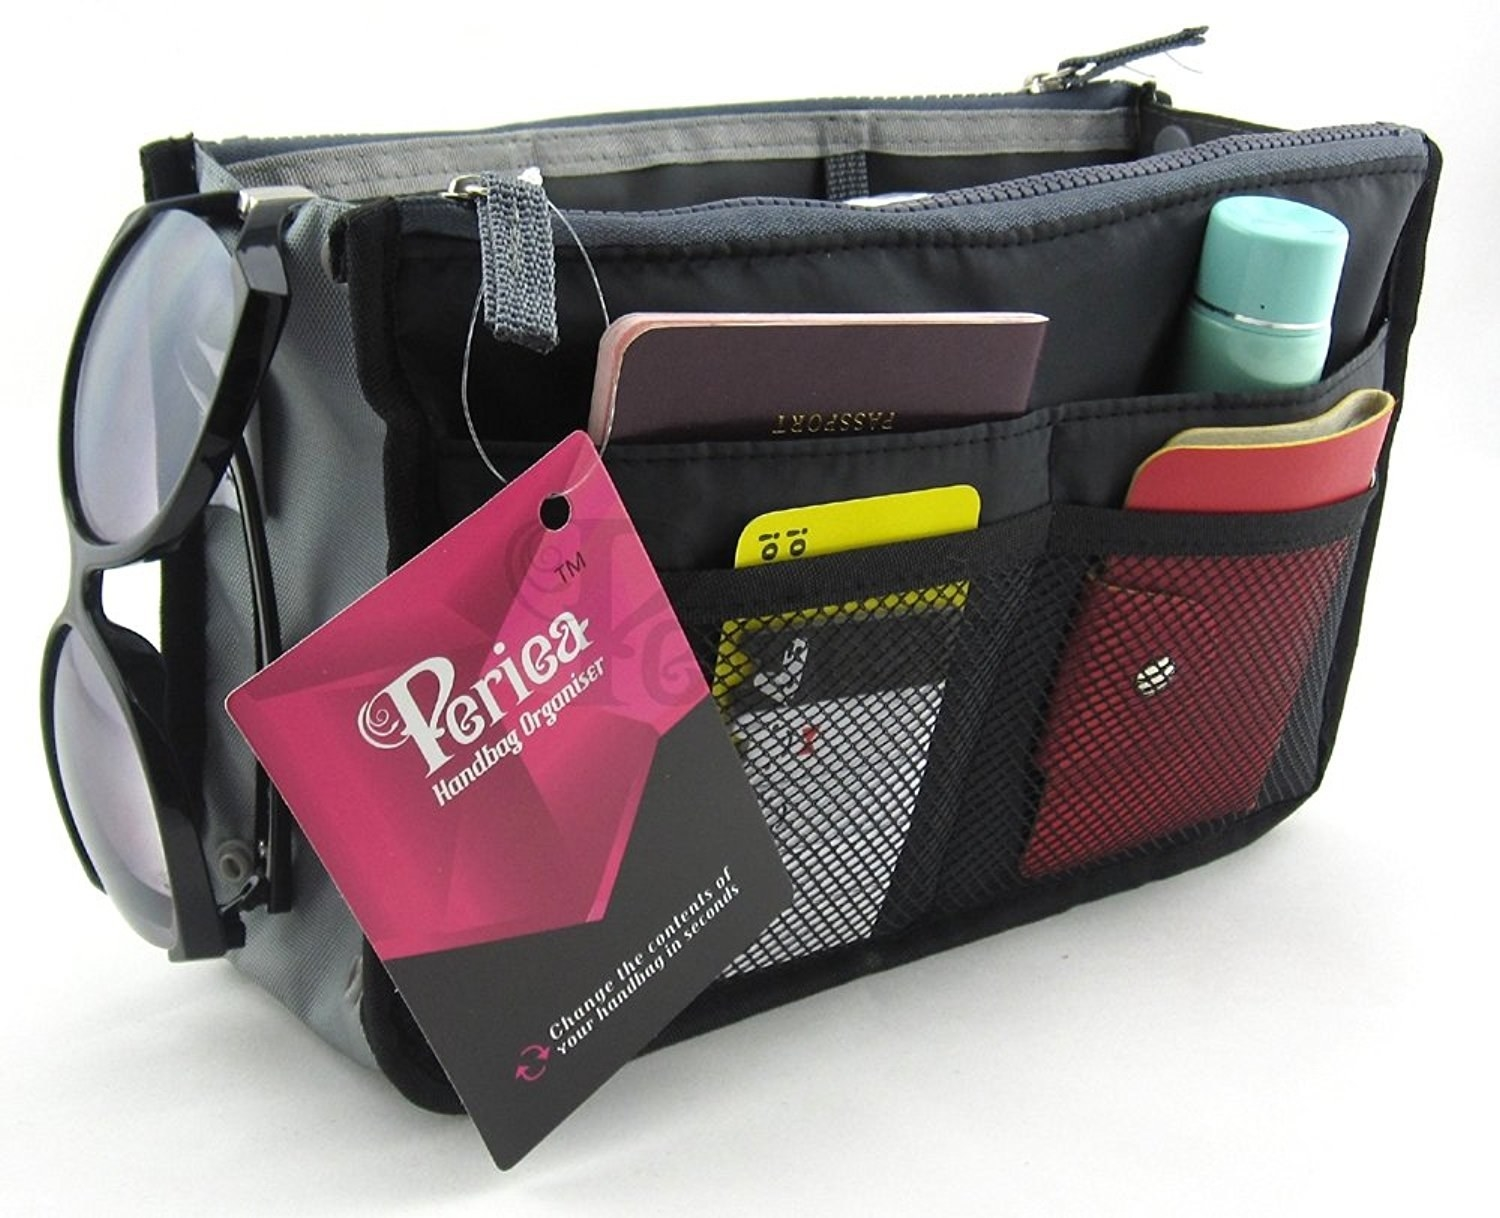 7a876b7ad0f0 12. An organizer that ll help your bag reach a level of neatness beyond  your wildest imagination. Just move it when you decide to switch bags.